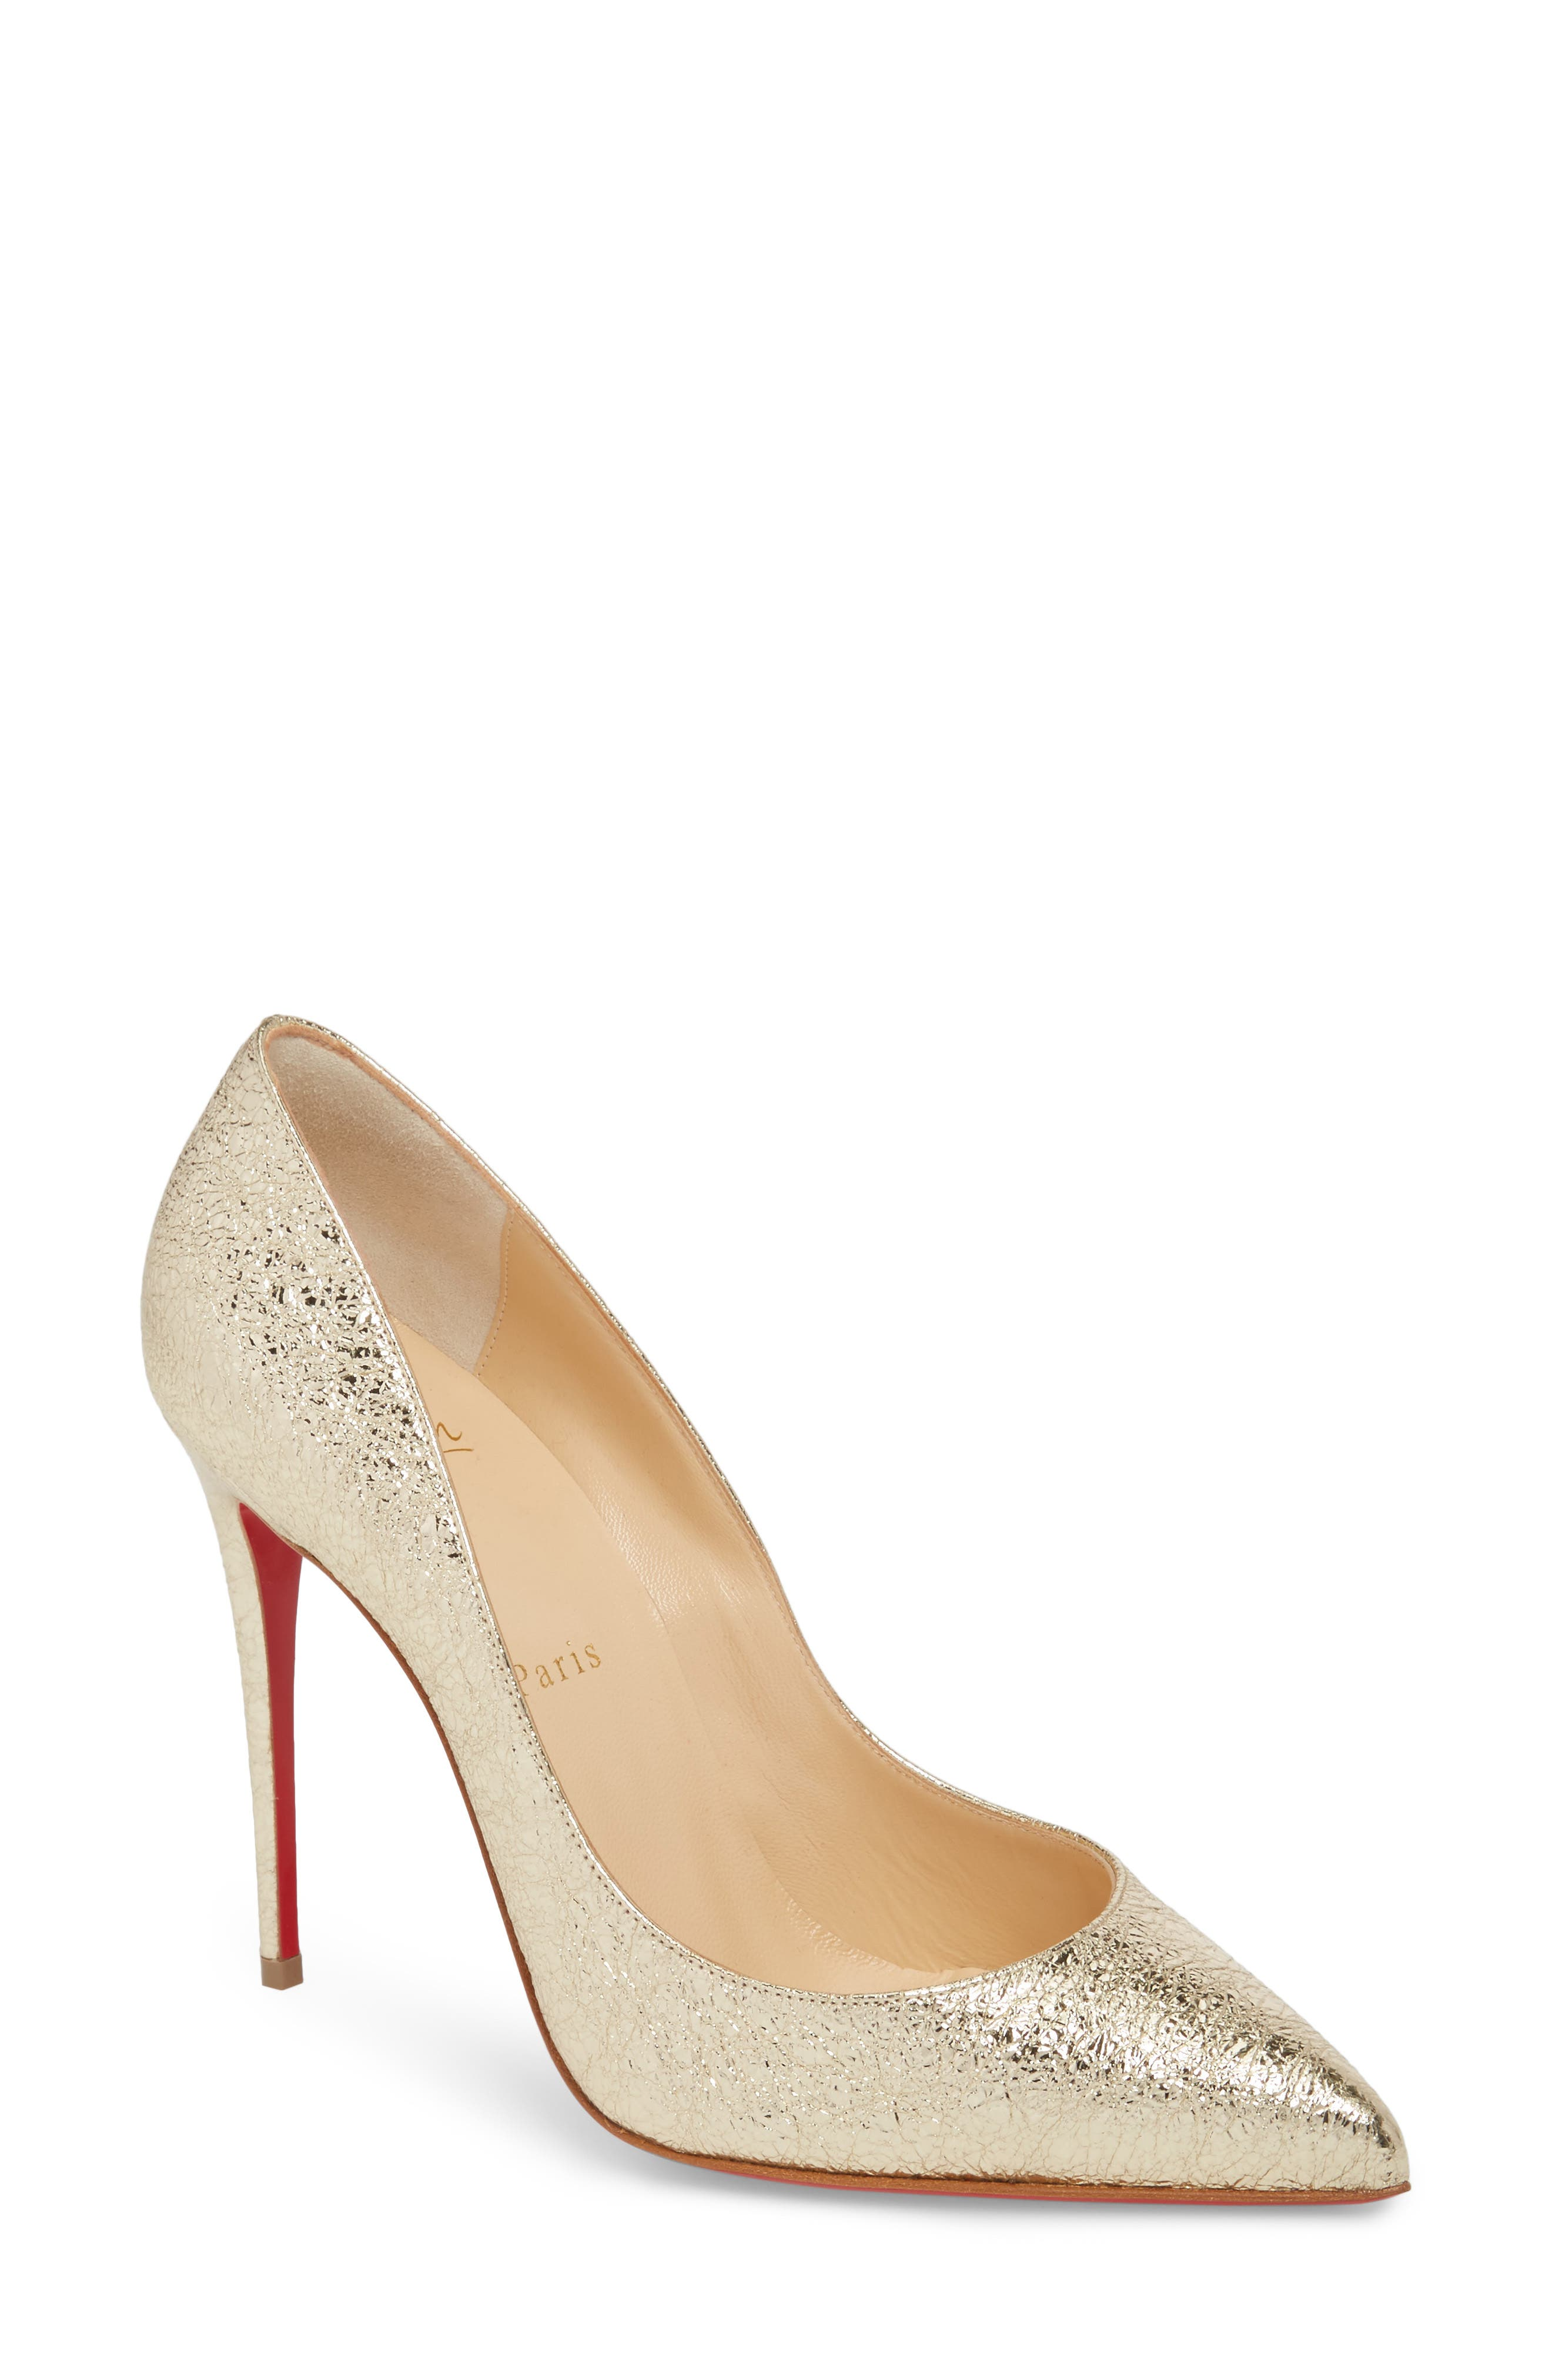 Pigalle Follies Pointy Toe Pump,                             Main thumbnail 1, color,                             Platine